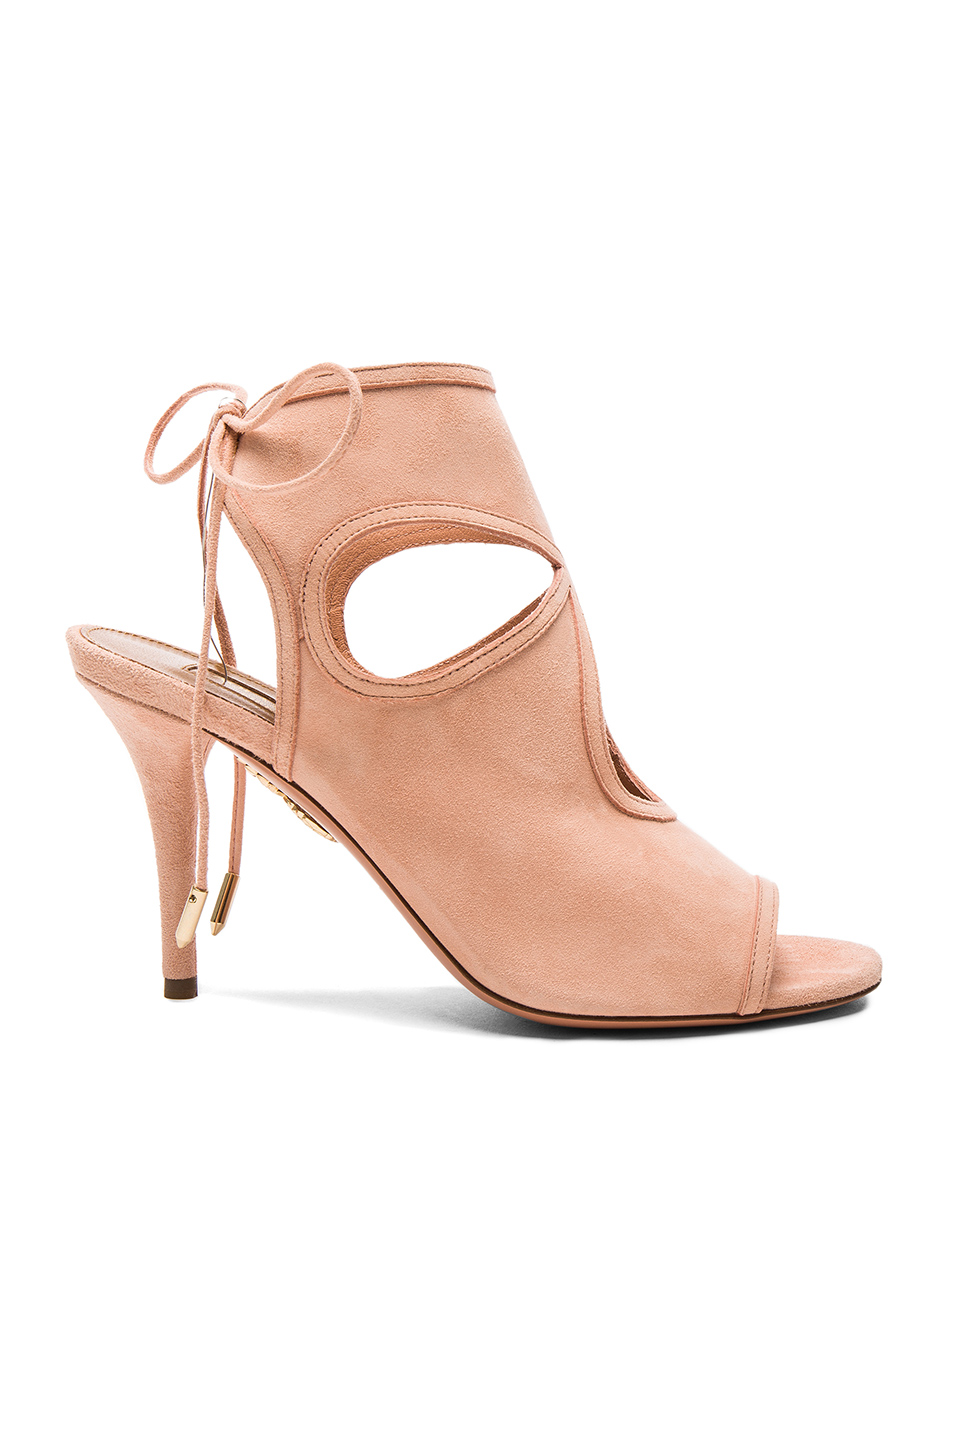 Aquazzura Suede Sexy Thing Heels in Pink